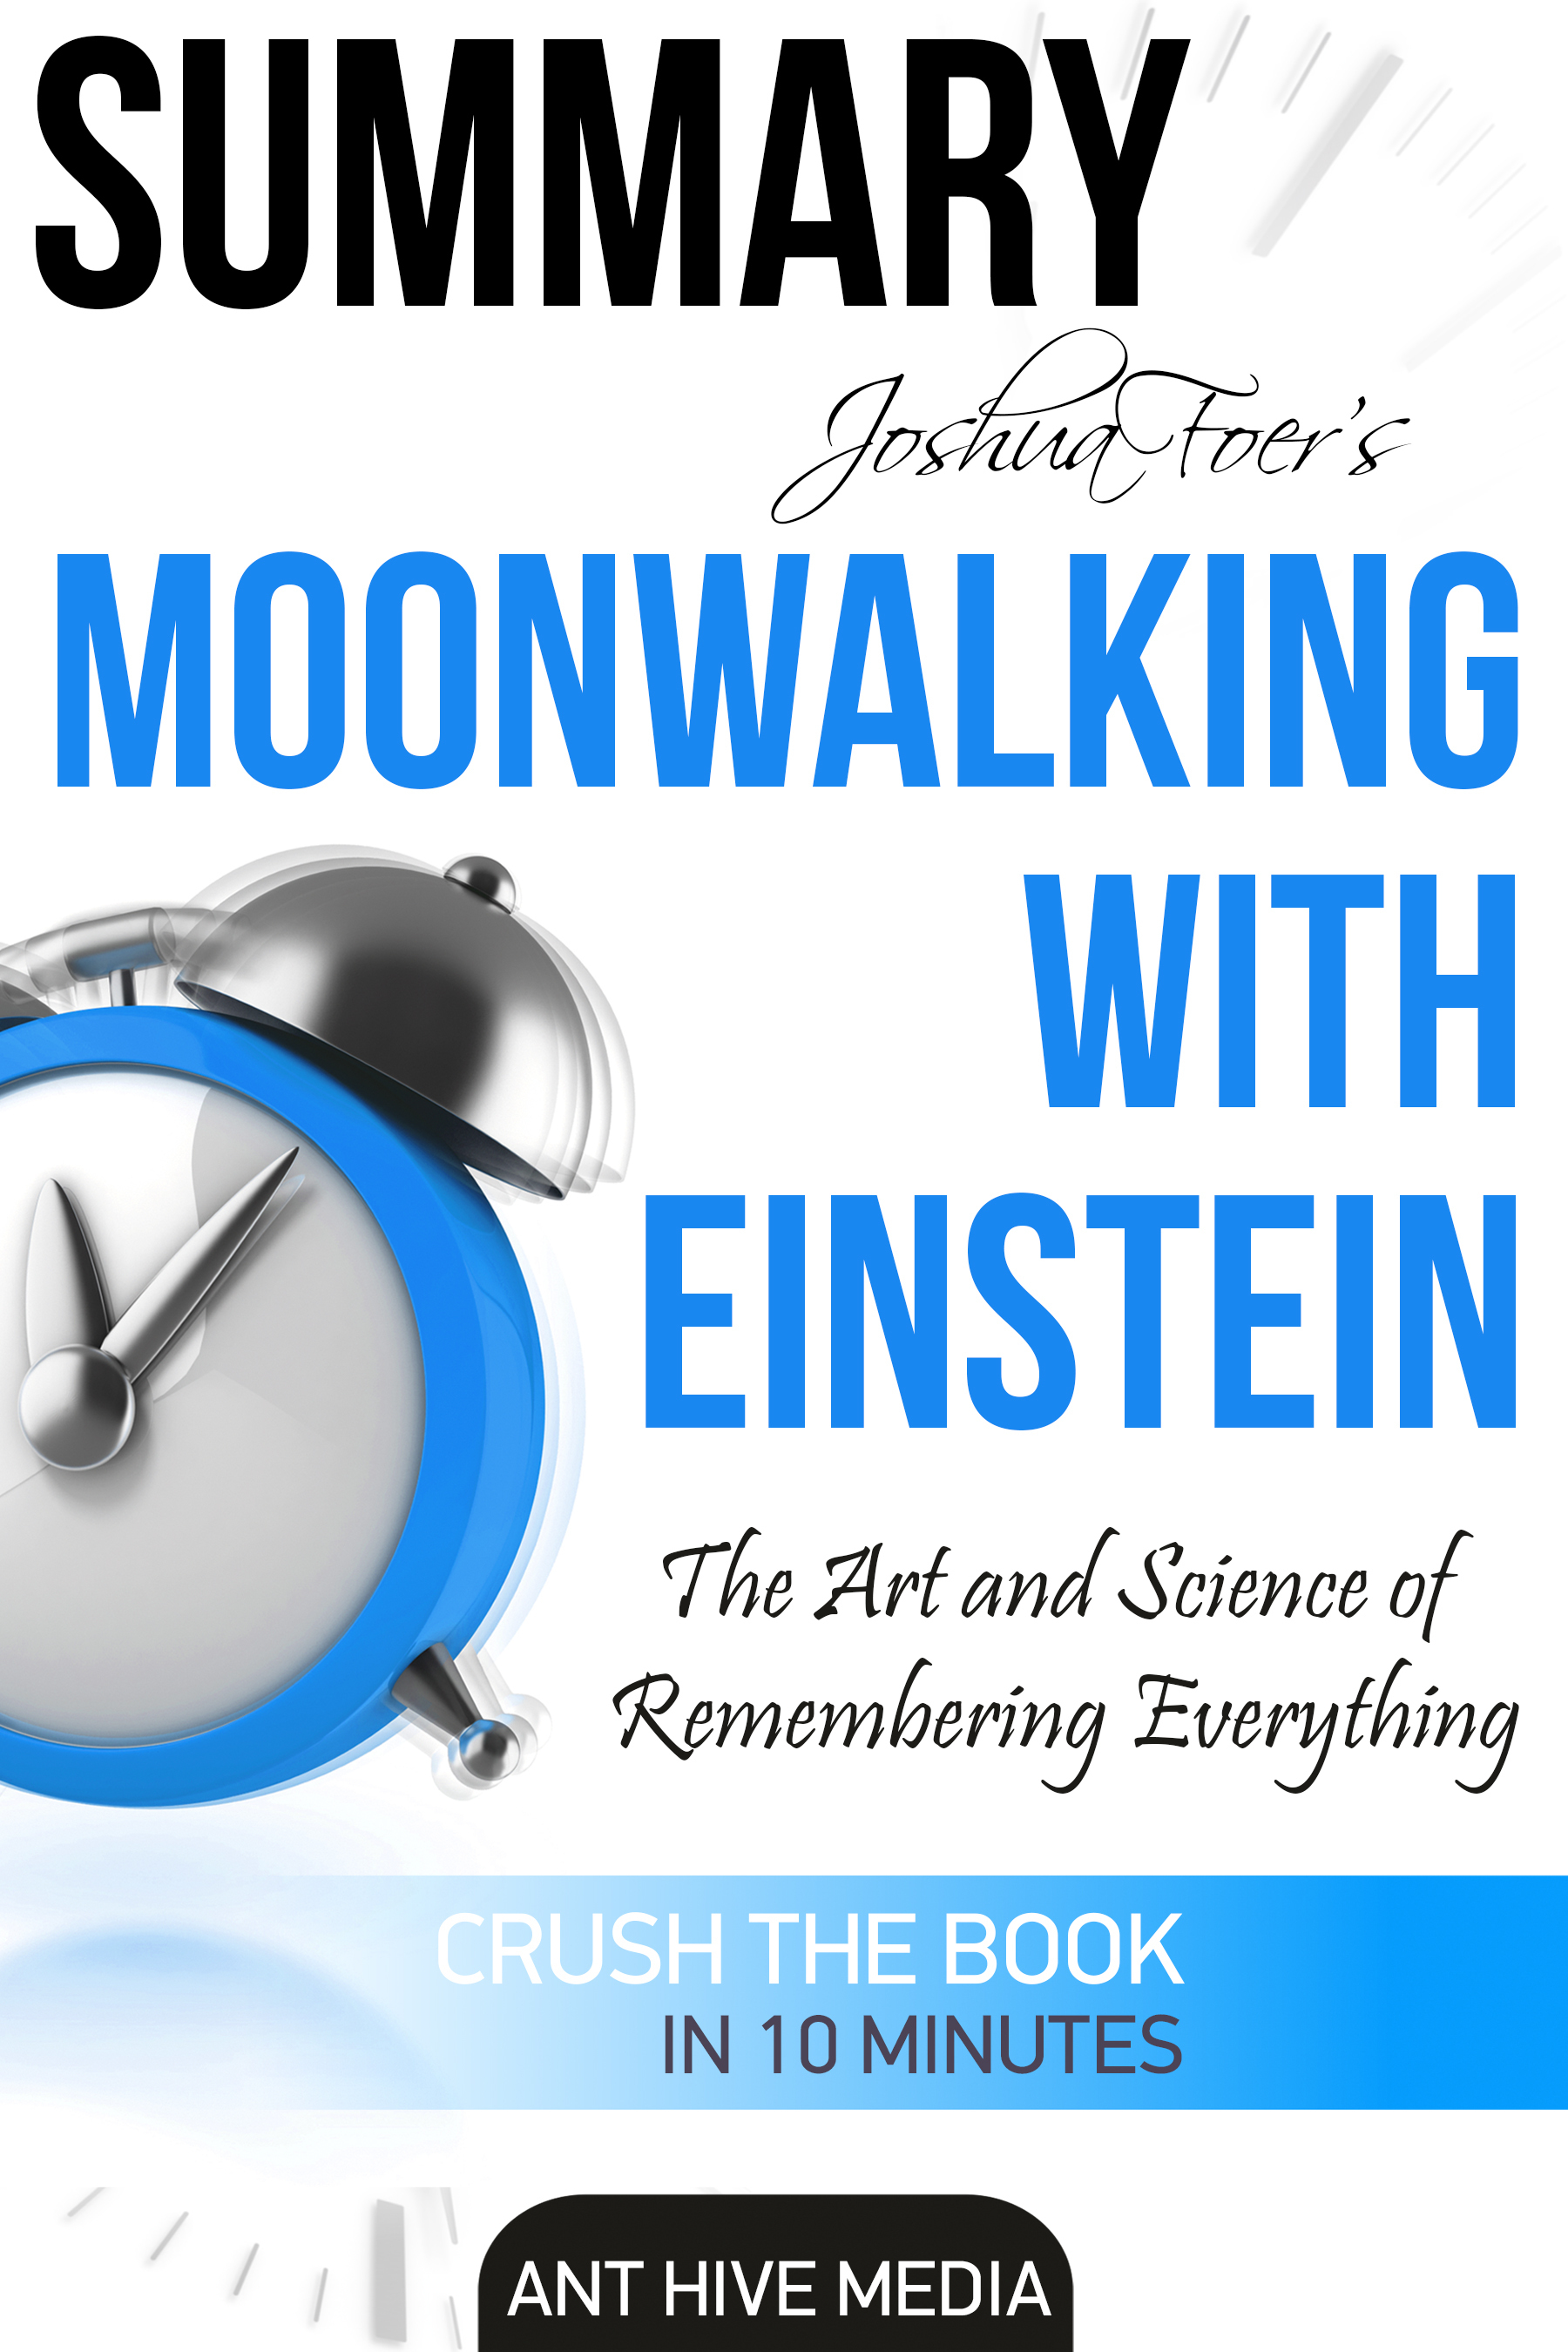 Joshua Foer's Moonwalking with Einstein The Art and Science Of Remembering Everything   Summary